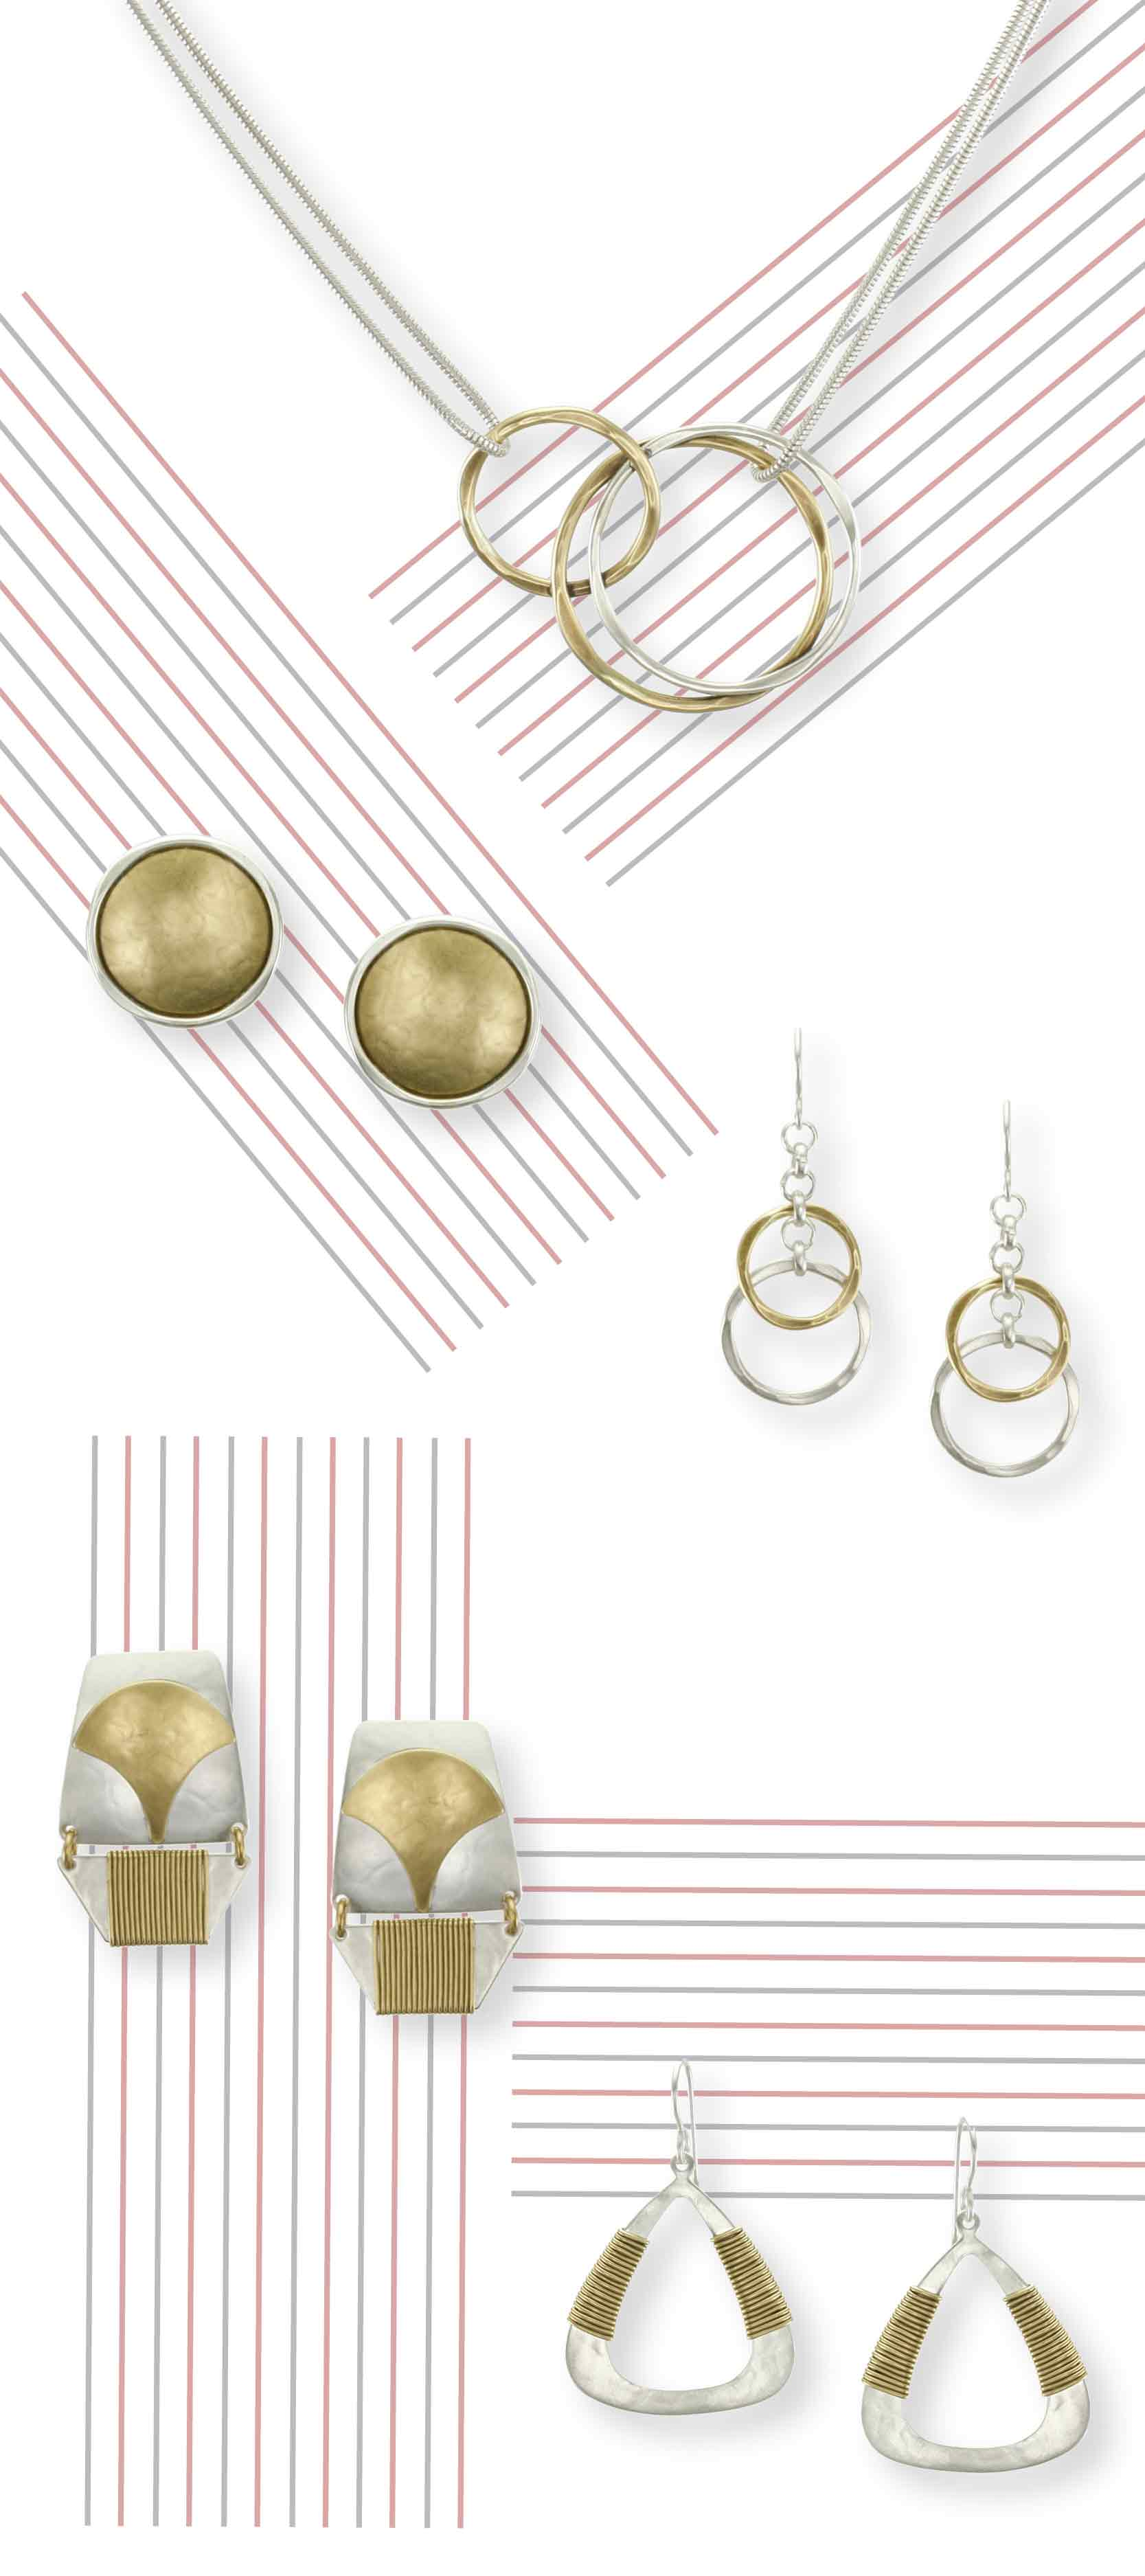 A selection of earrings and necklaces from the Fall 2015 collection